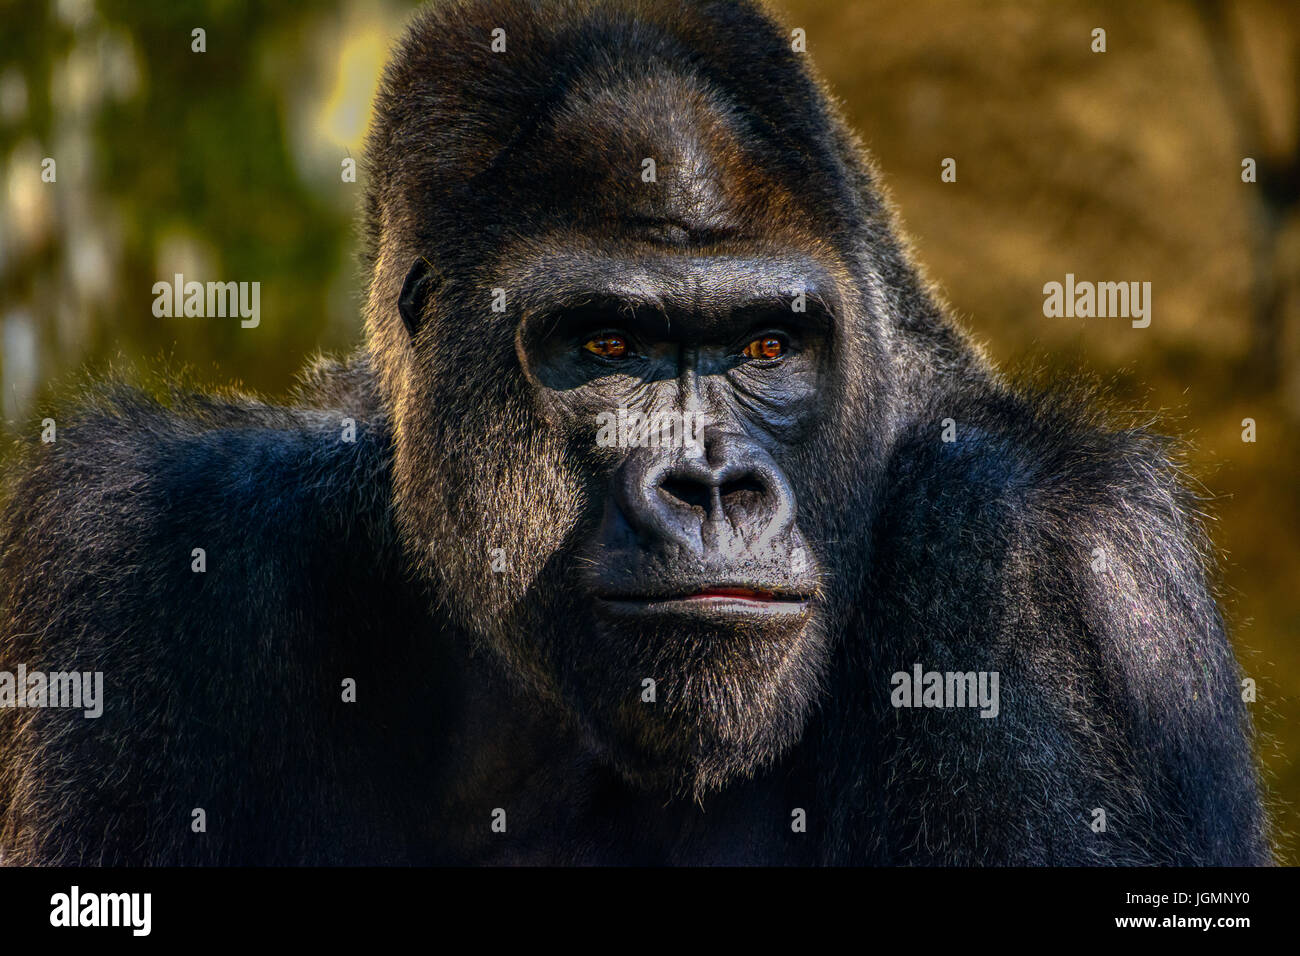 Male Silverback Western Lowland gorilla, (Gorilla gorilla gorilla) close-up portrait with vivid details of face, - Stock Image